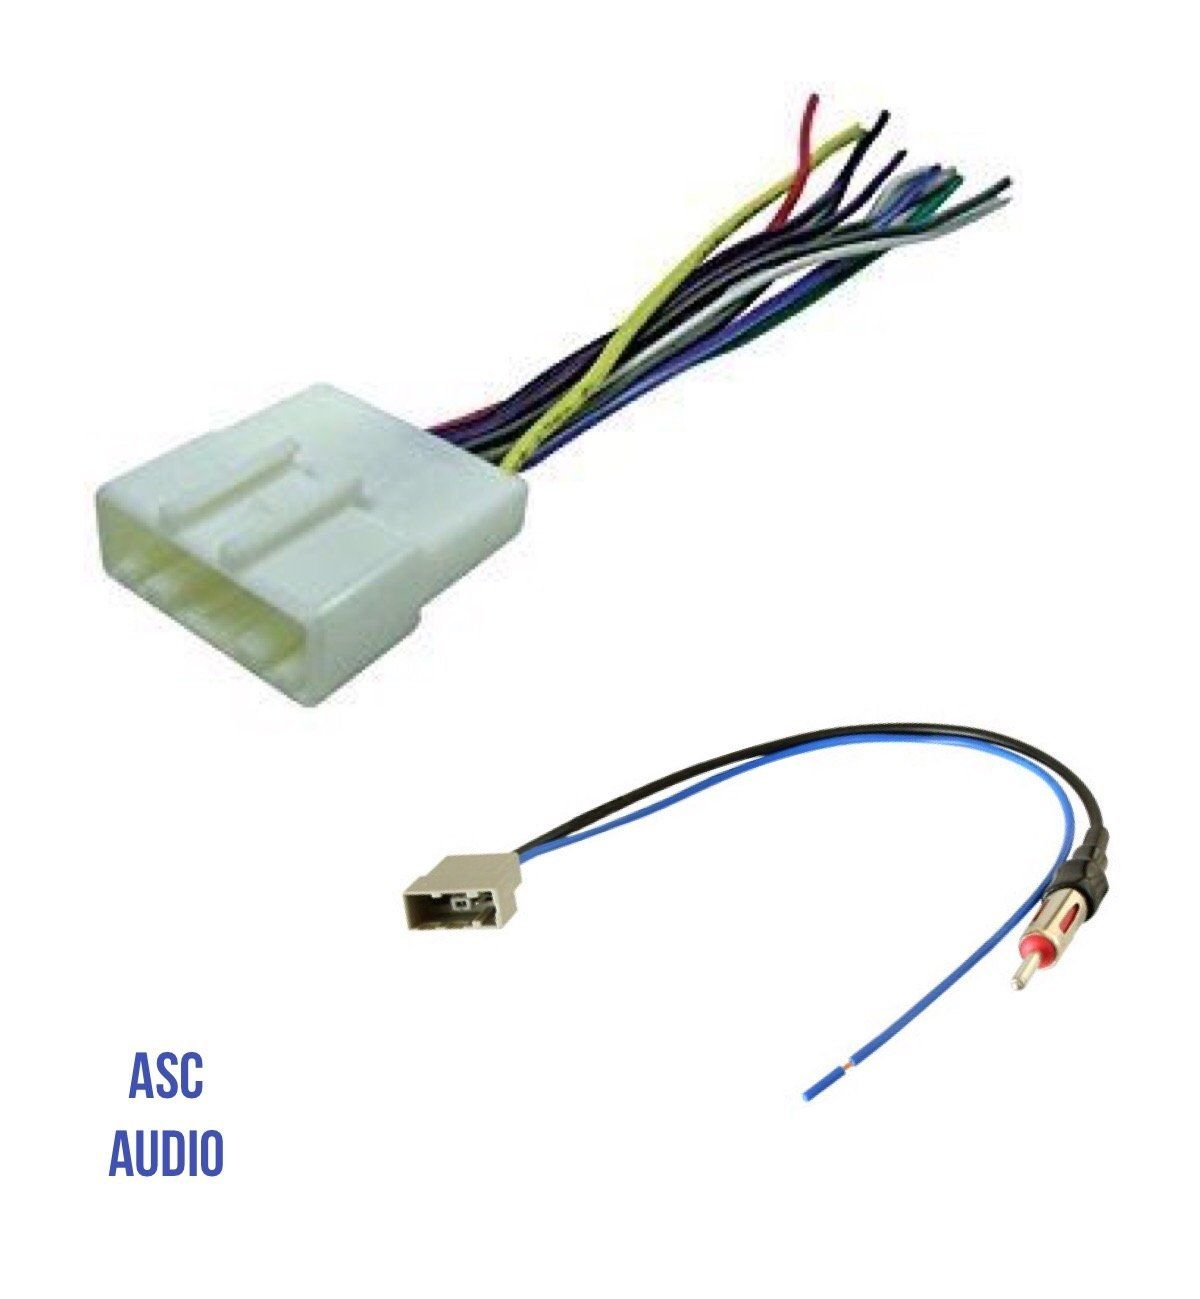 ASC Audio Car Stereo Radio Wire Harness and Antenna